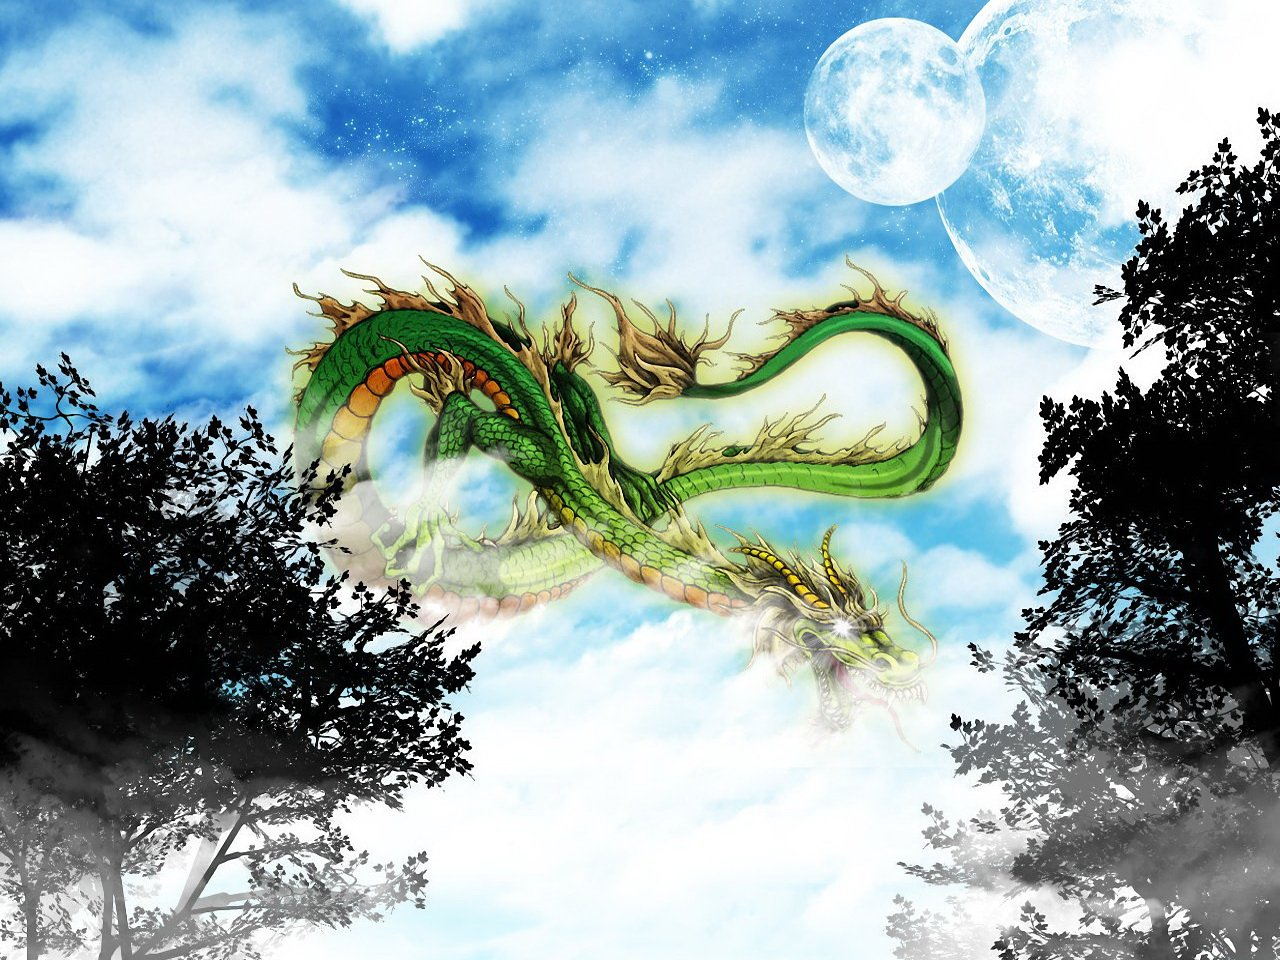 3d dragon desktop wallpaper wallpapersafari - Dragon wallpaper 3d ...